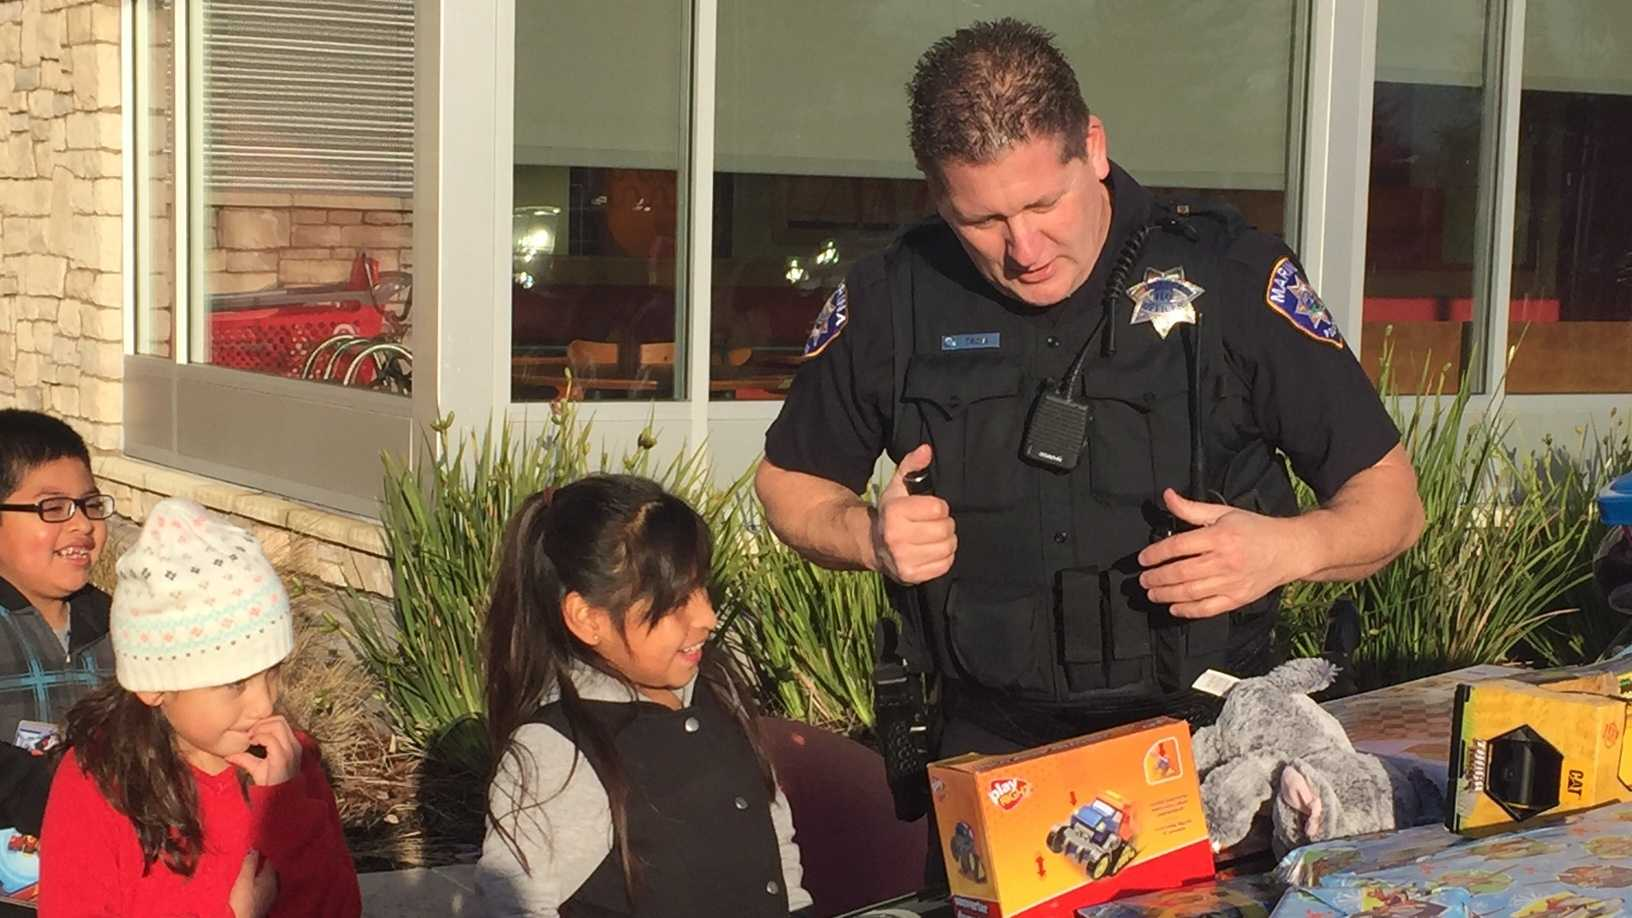 KSBW Police hand out toys.JPG